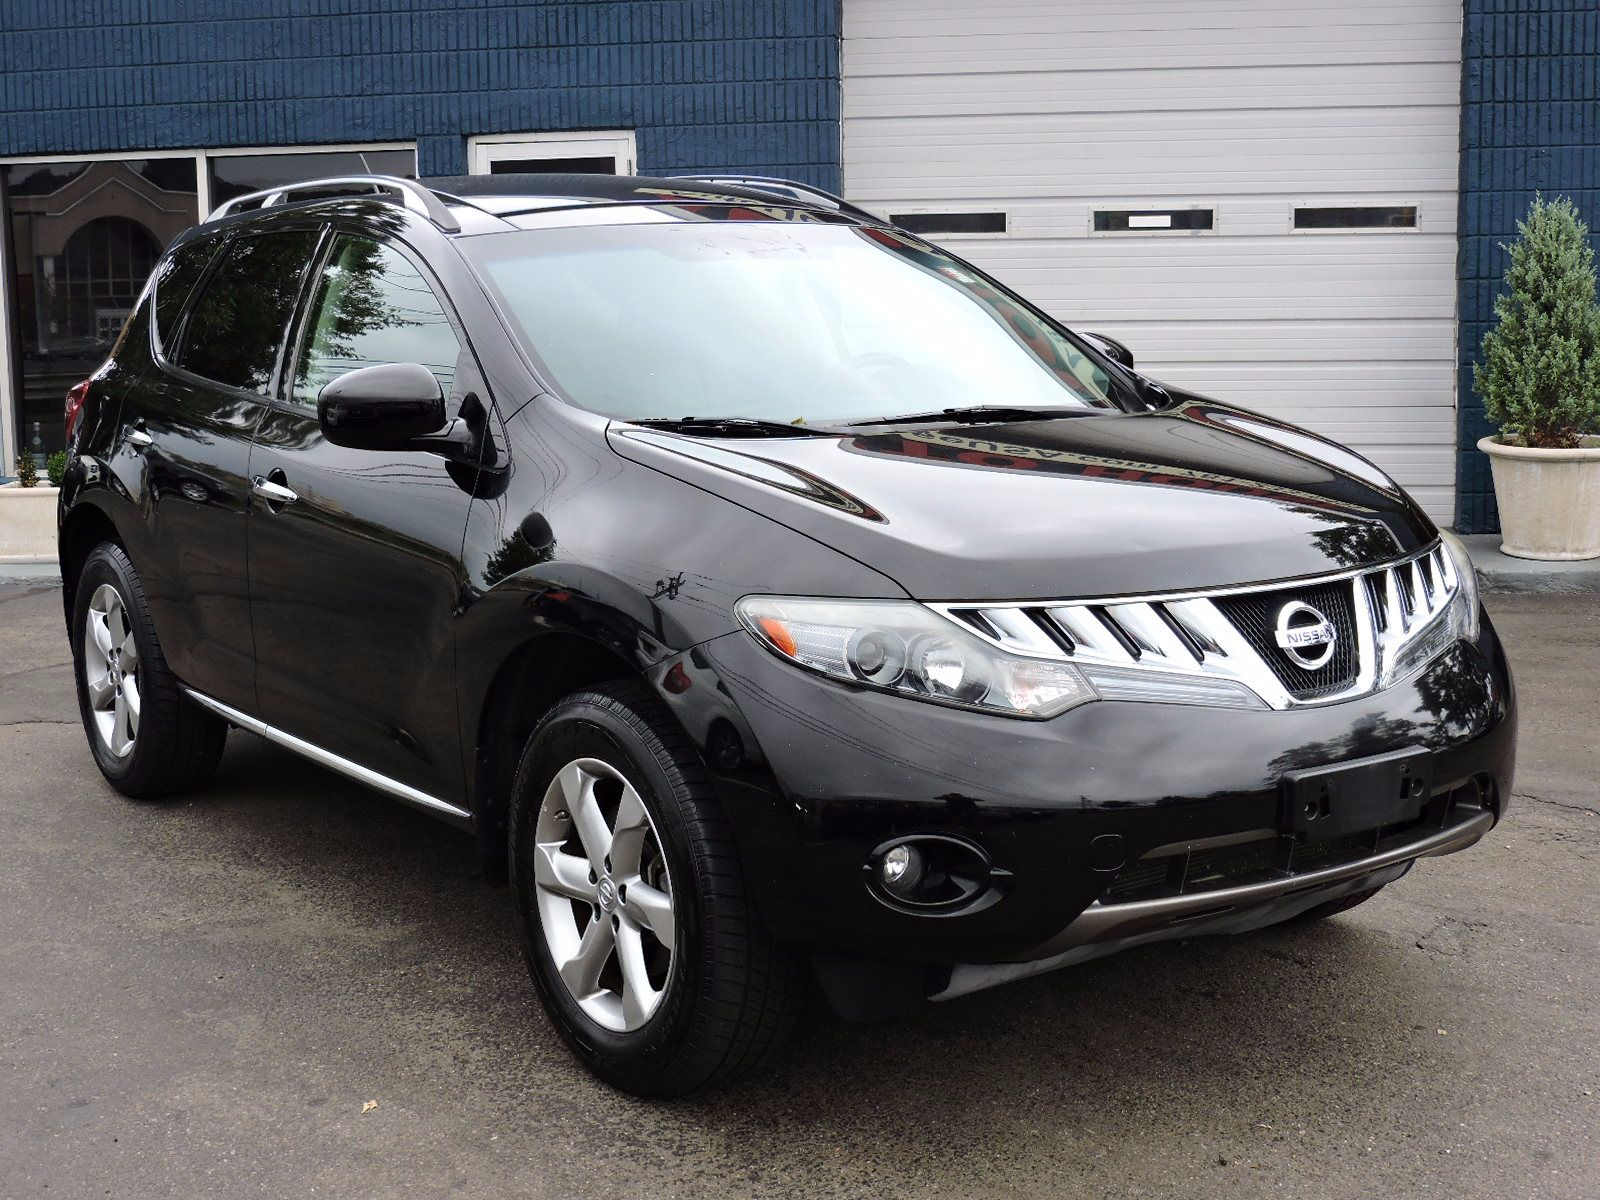 nissan price new gallery photo murano specs review with awd and reviews platinum car article